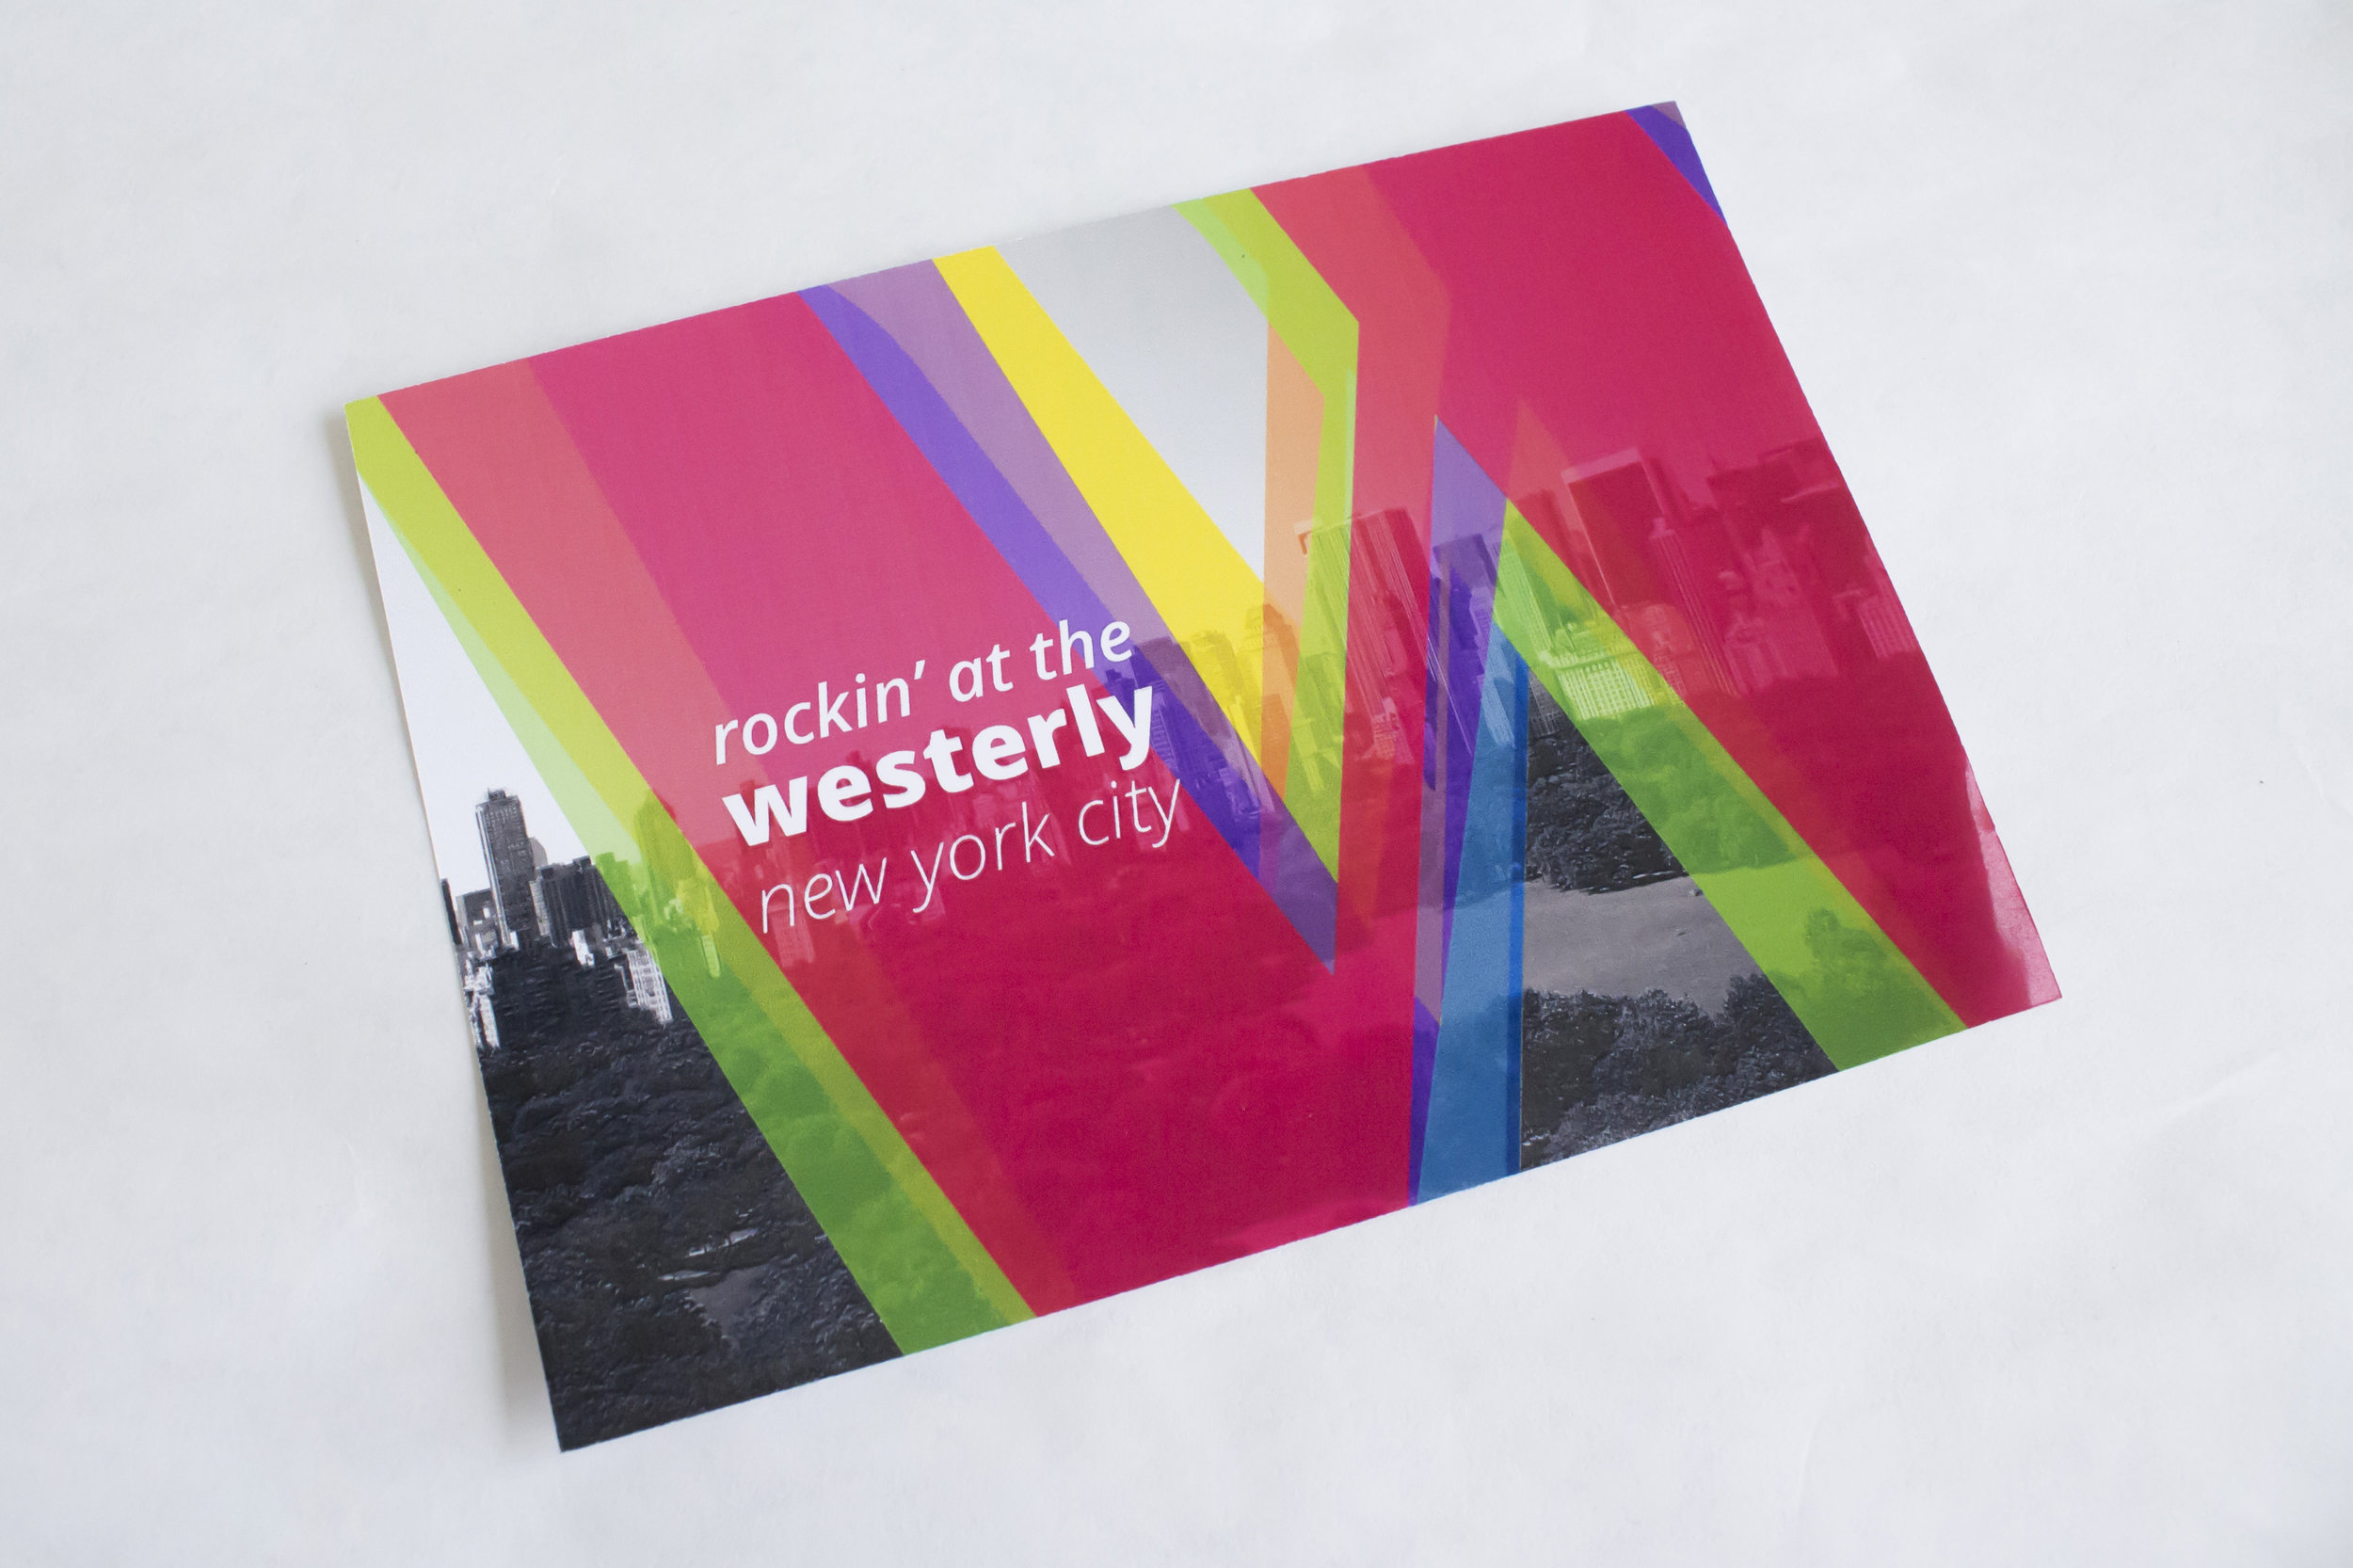 westerly_postcardFront.JPG